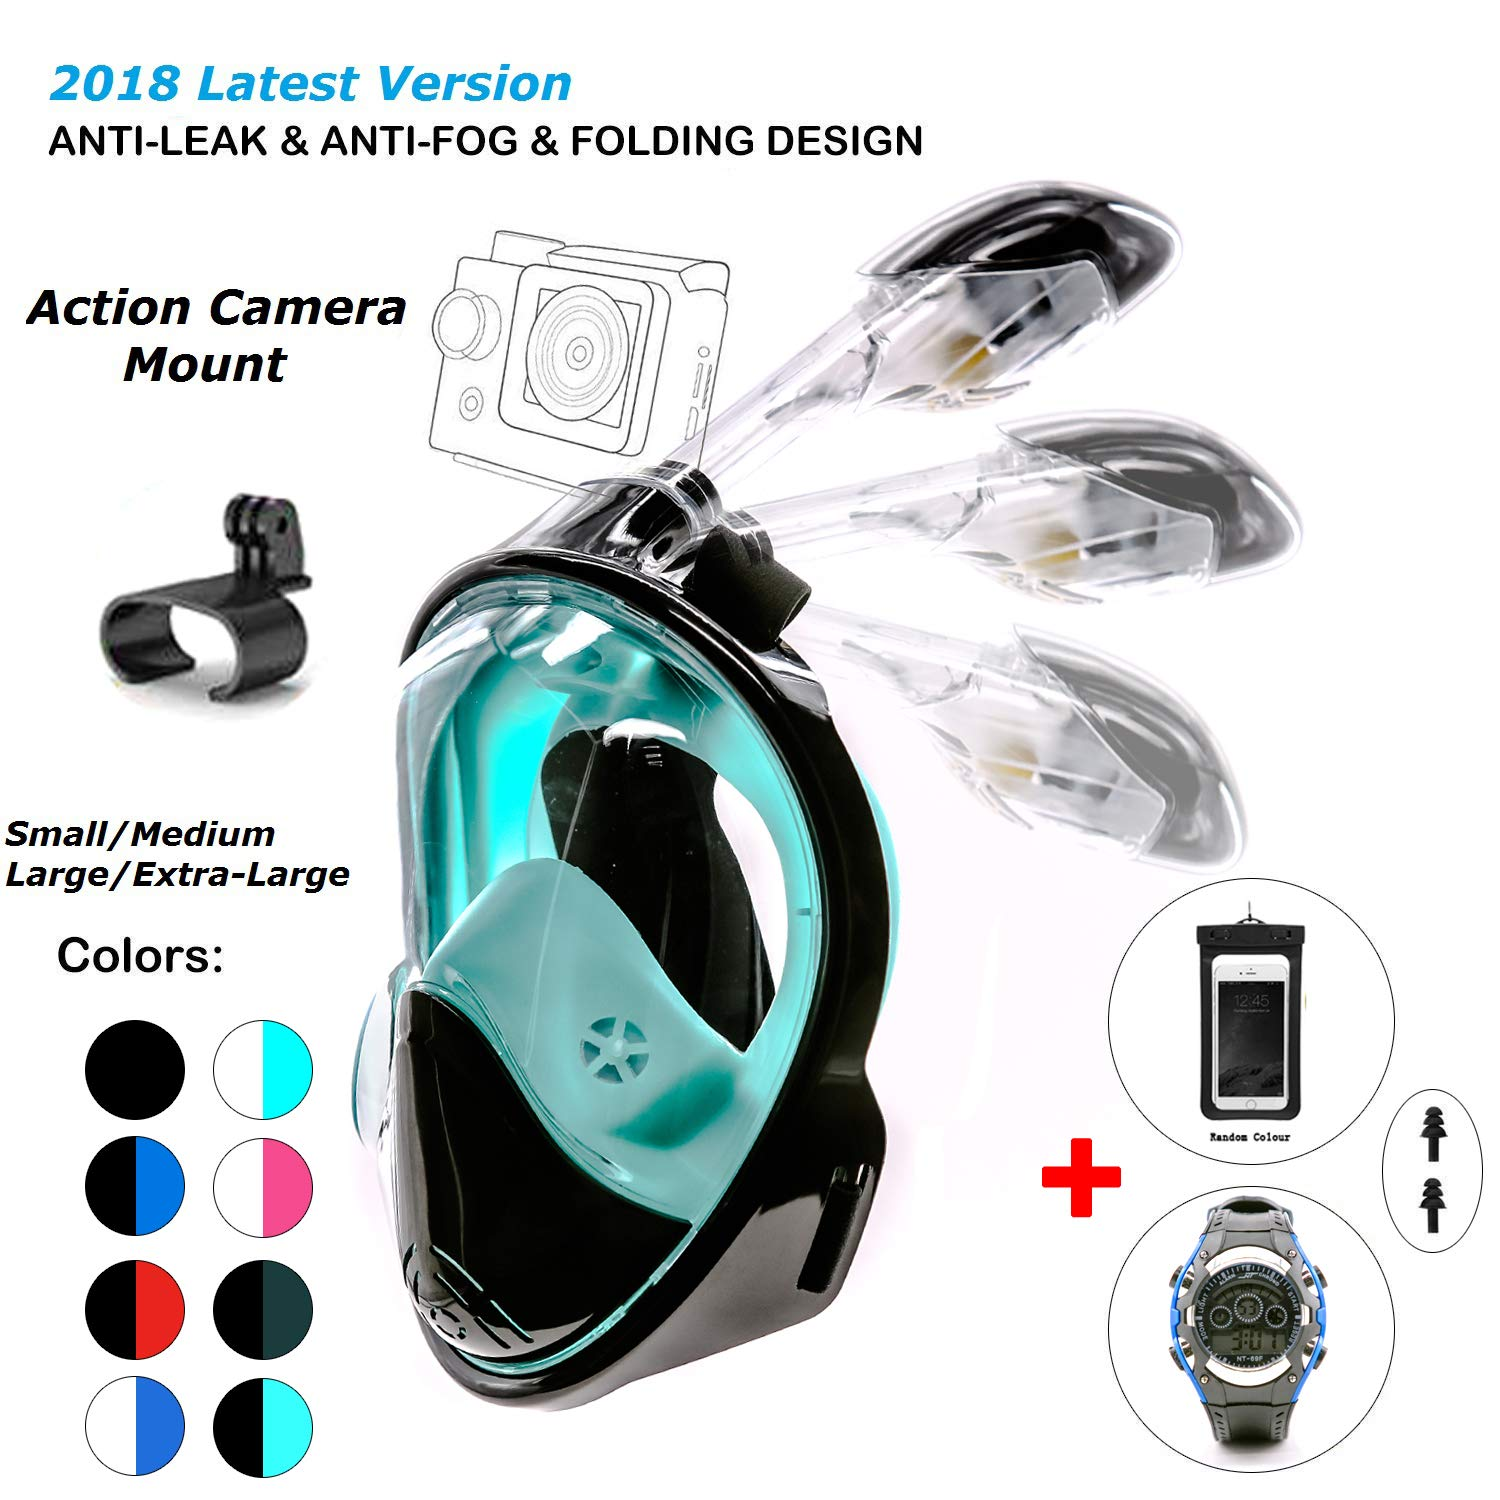 180° Snorkel Mask View for Adults and Youth. Full Face Free Breathing Folding Design.[Free Bonuses] Cell Phone Universal Waterproof Case and 30m Waterproof Watch (Black&Green, Small/Medium)